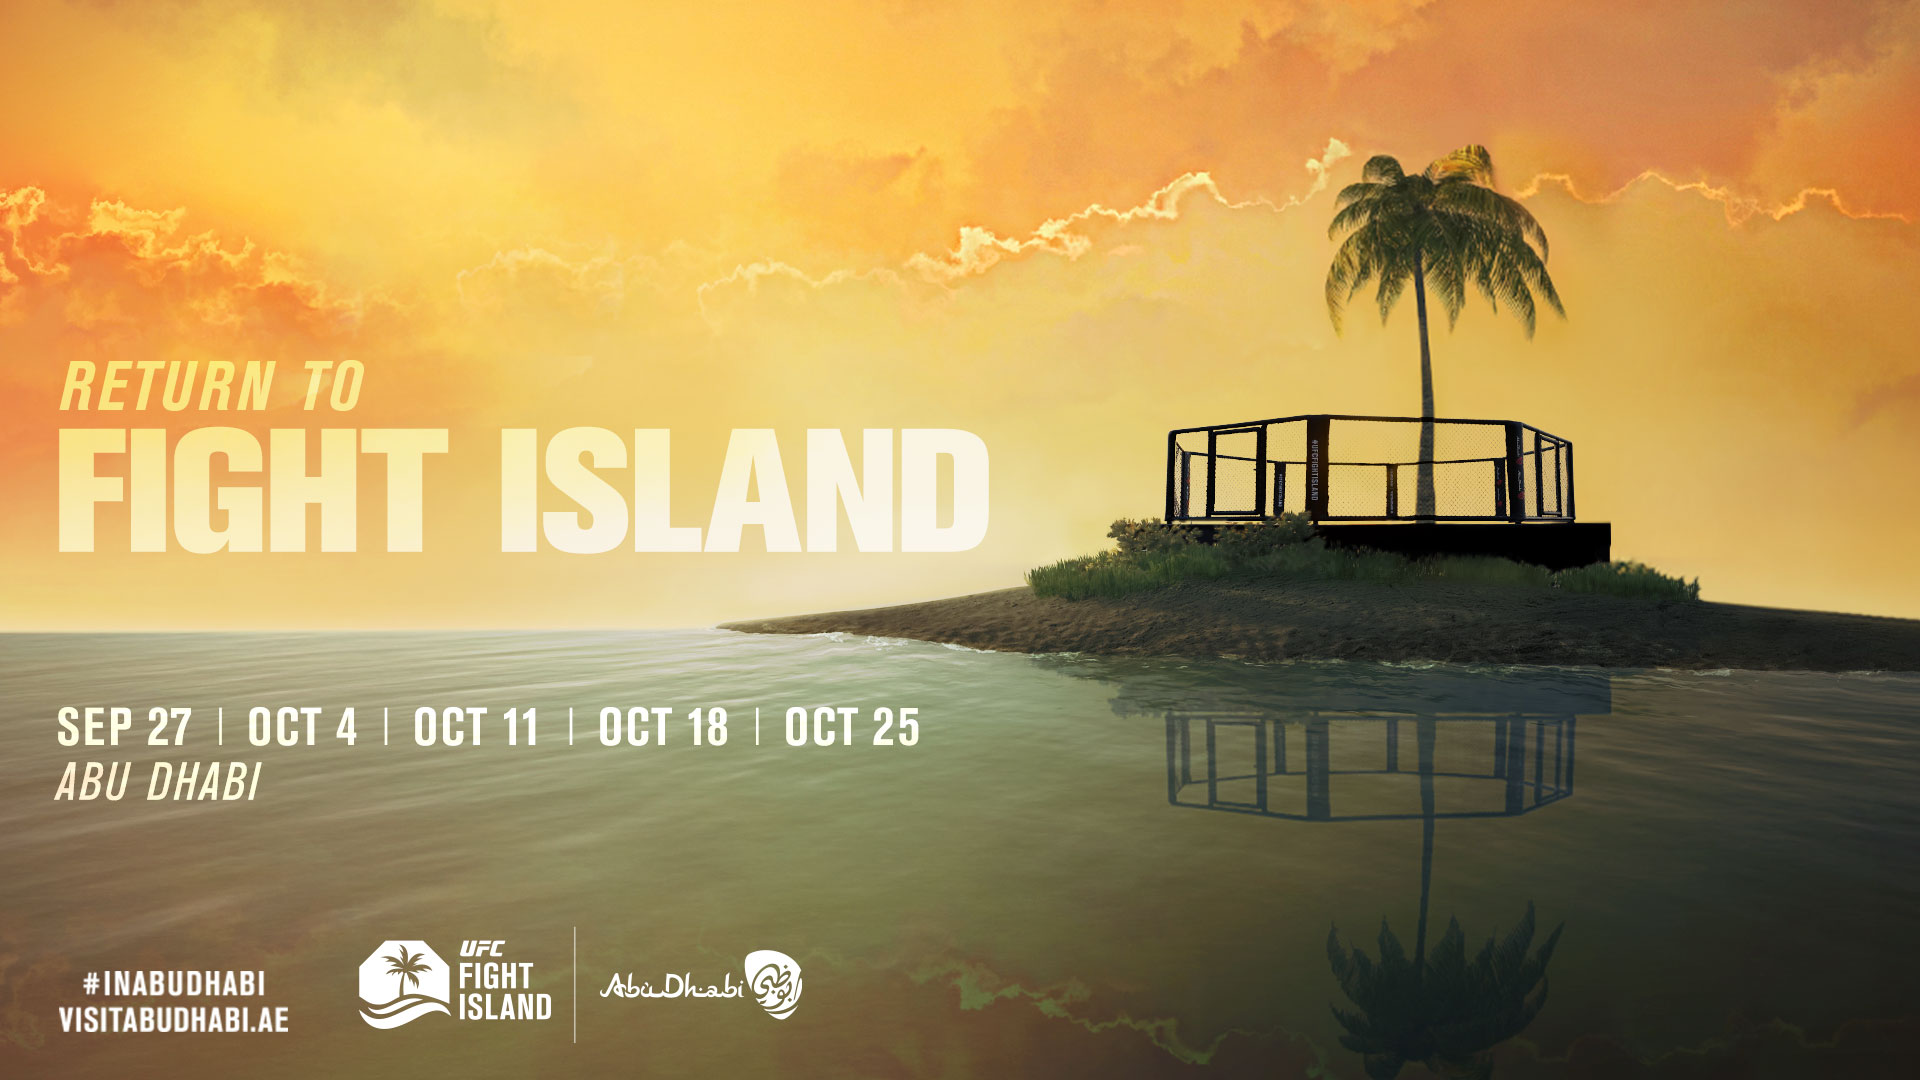 UFC Return to Fight Island Image with Tropical Trees